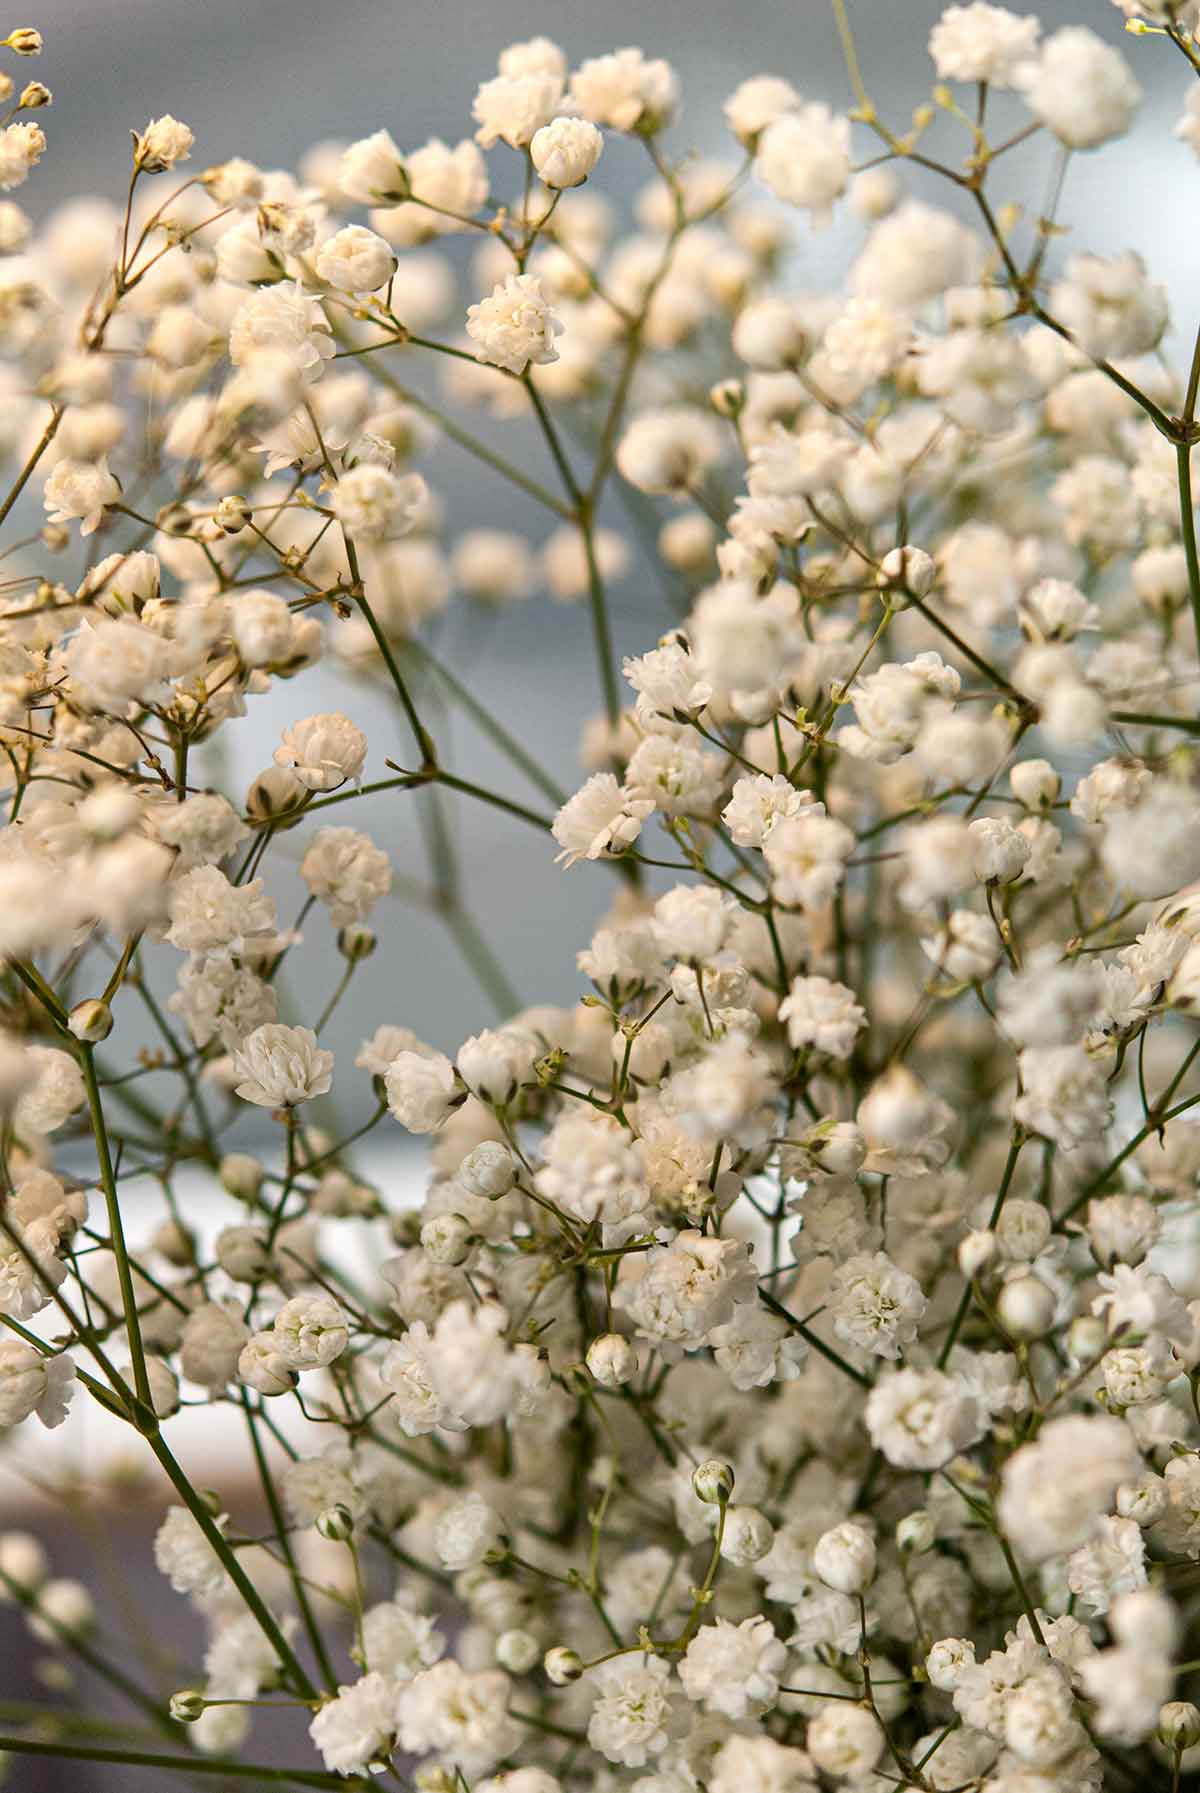 Baby's Breath flowers.